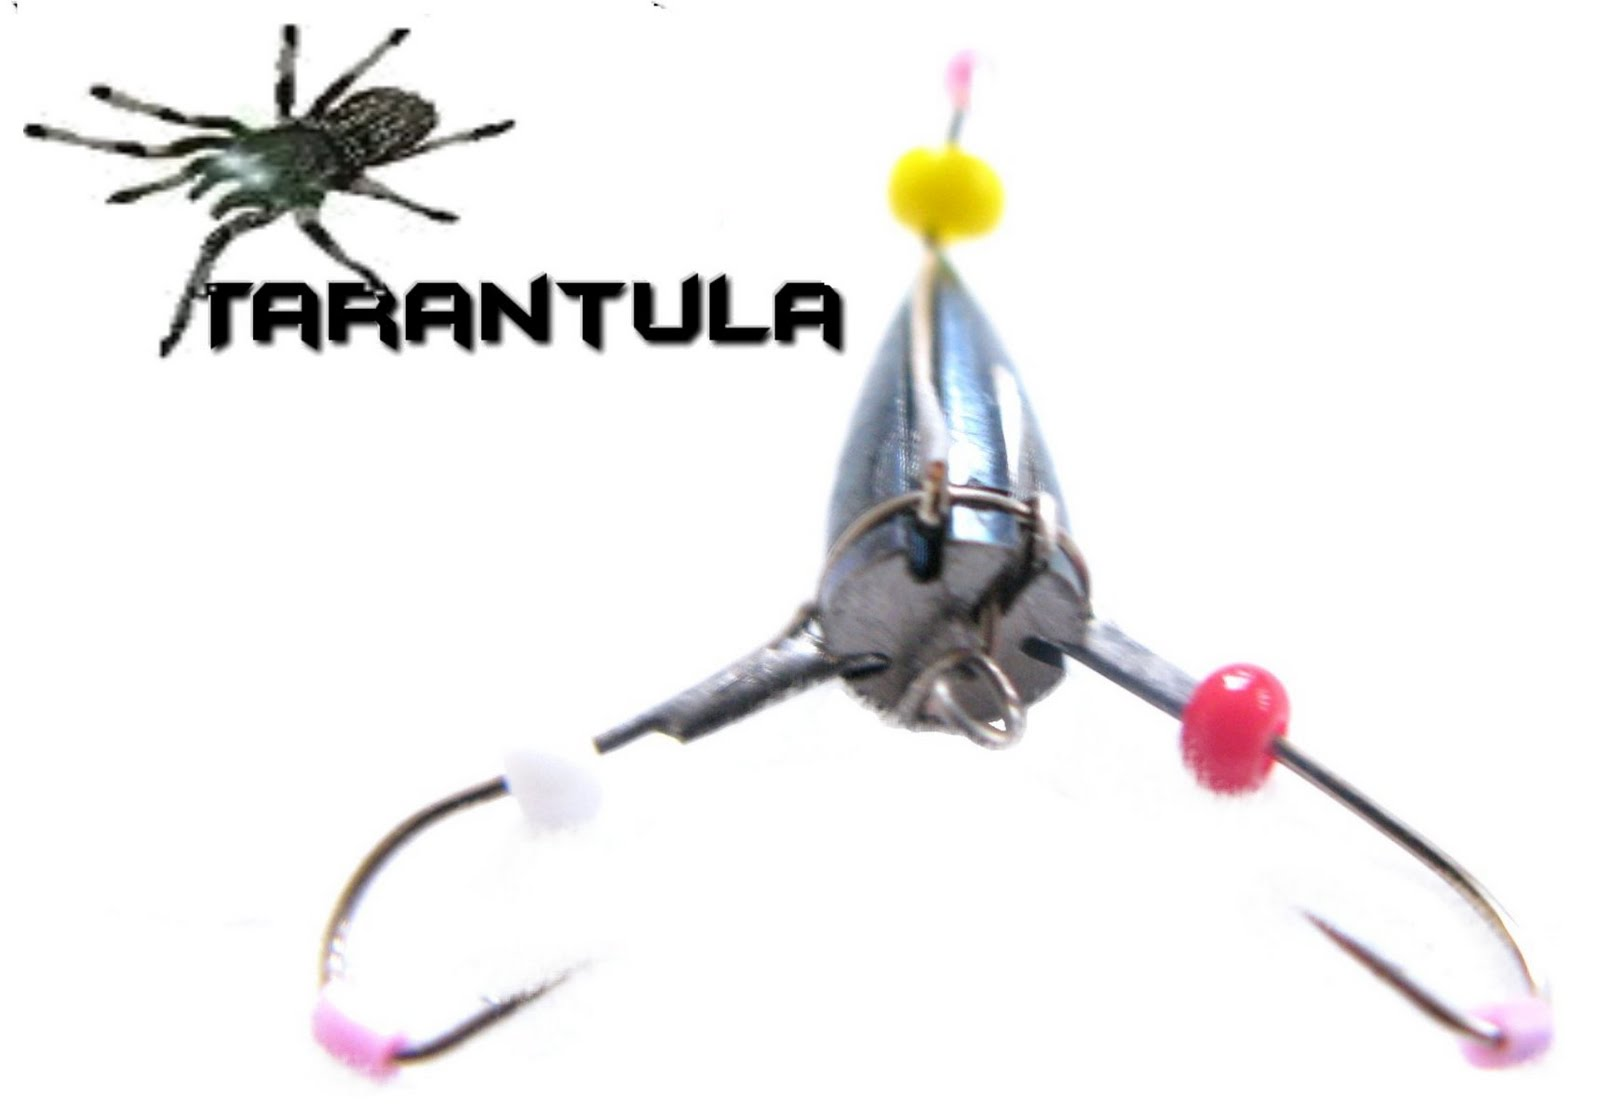 new ice fishing gear for 2011